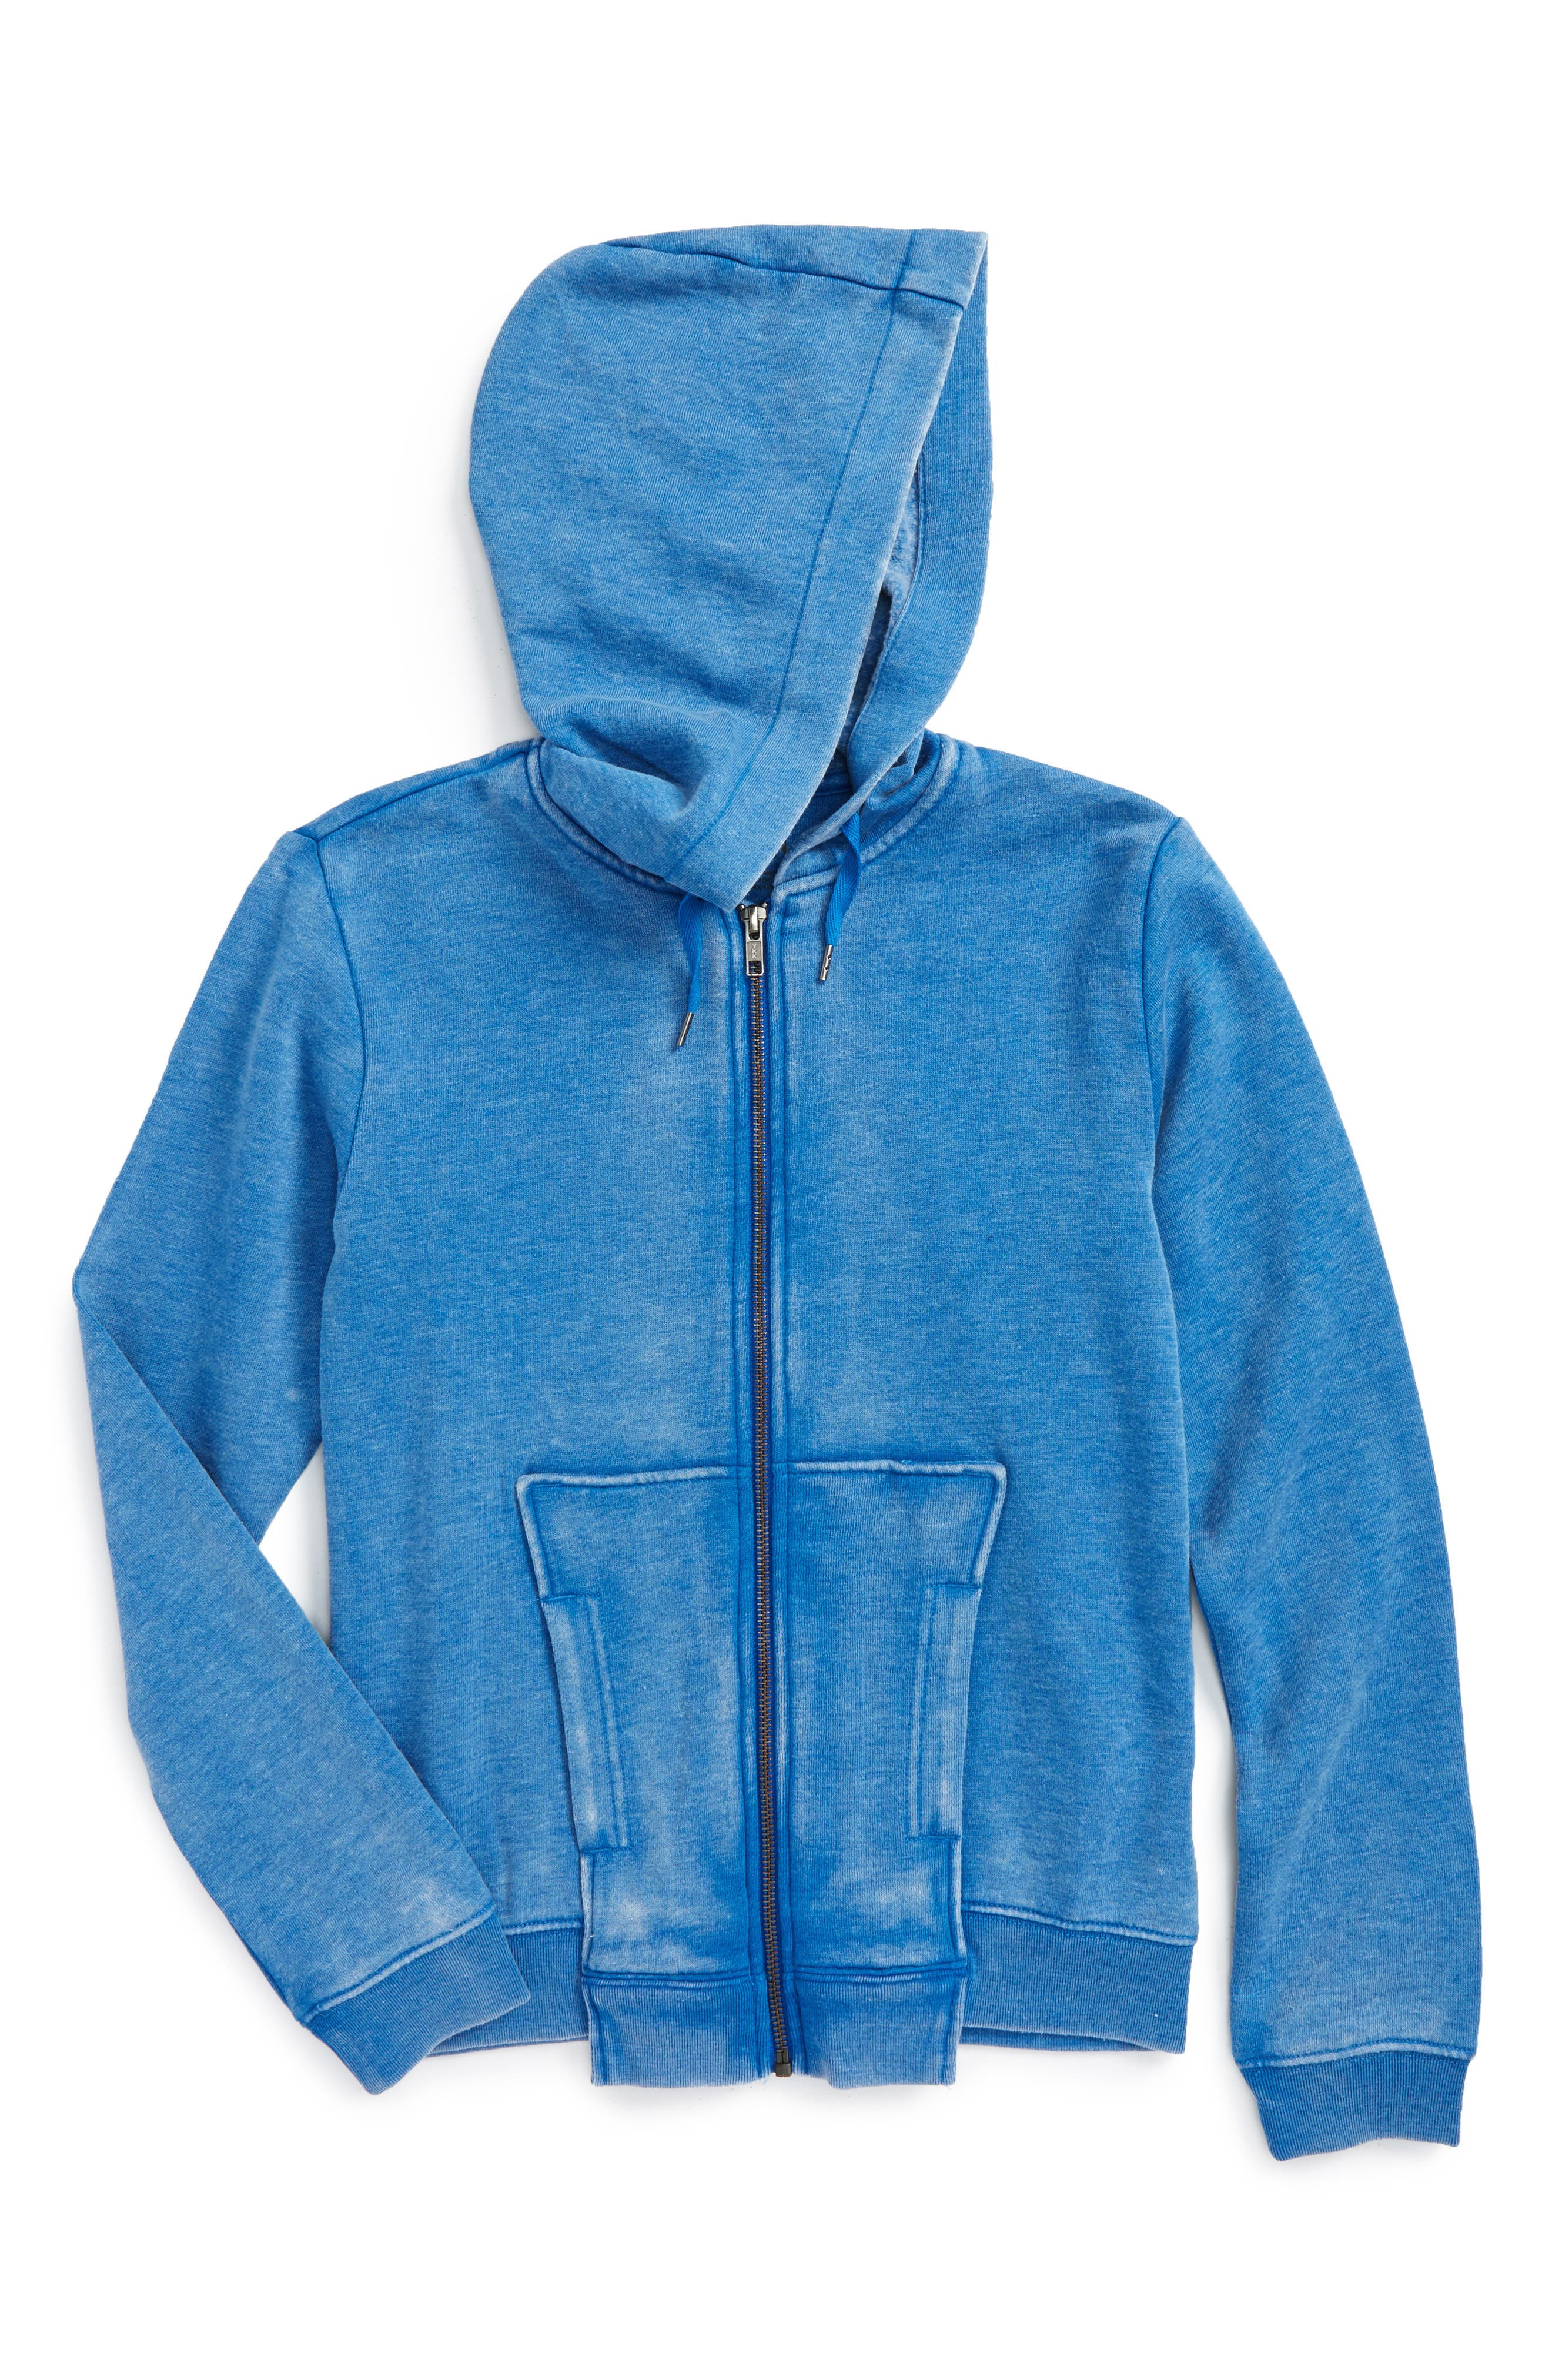 Alternate Image 1 Selected - Hudson Kids Mishap Hoodie (Big Boys)